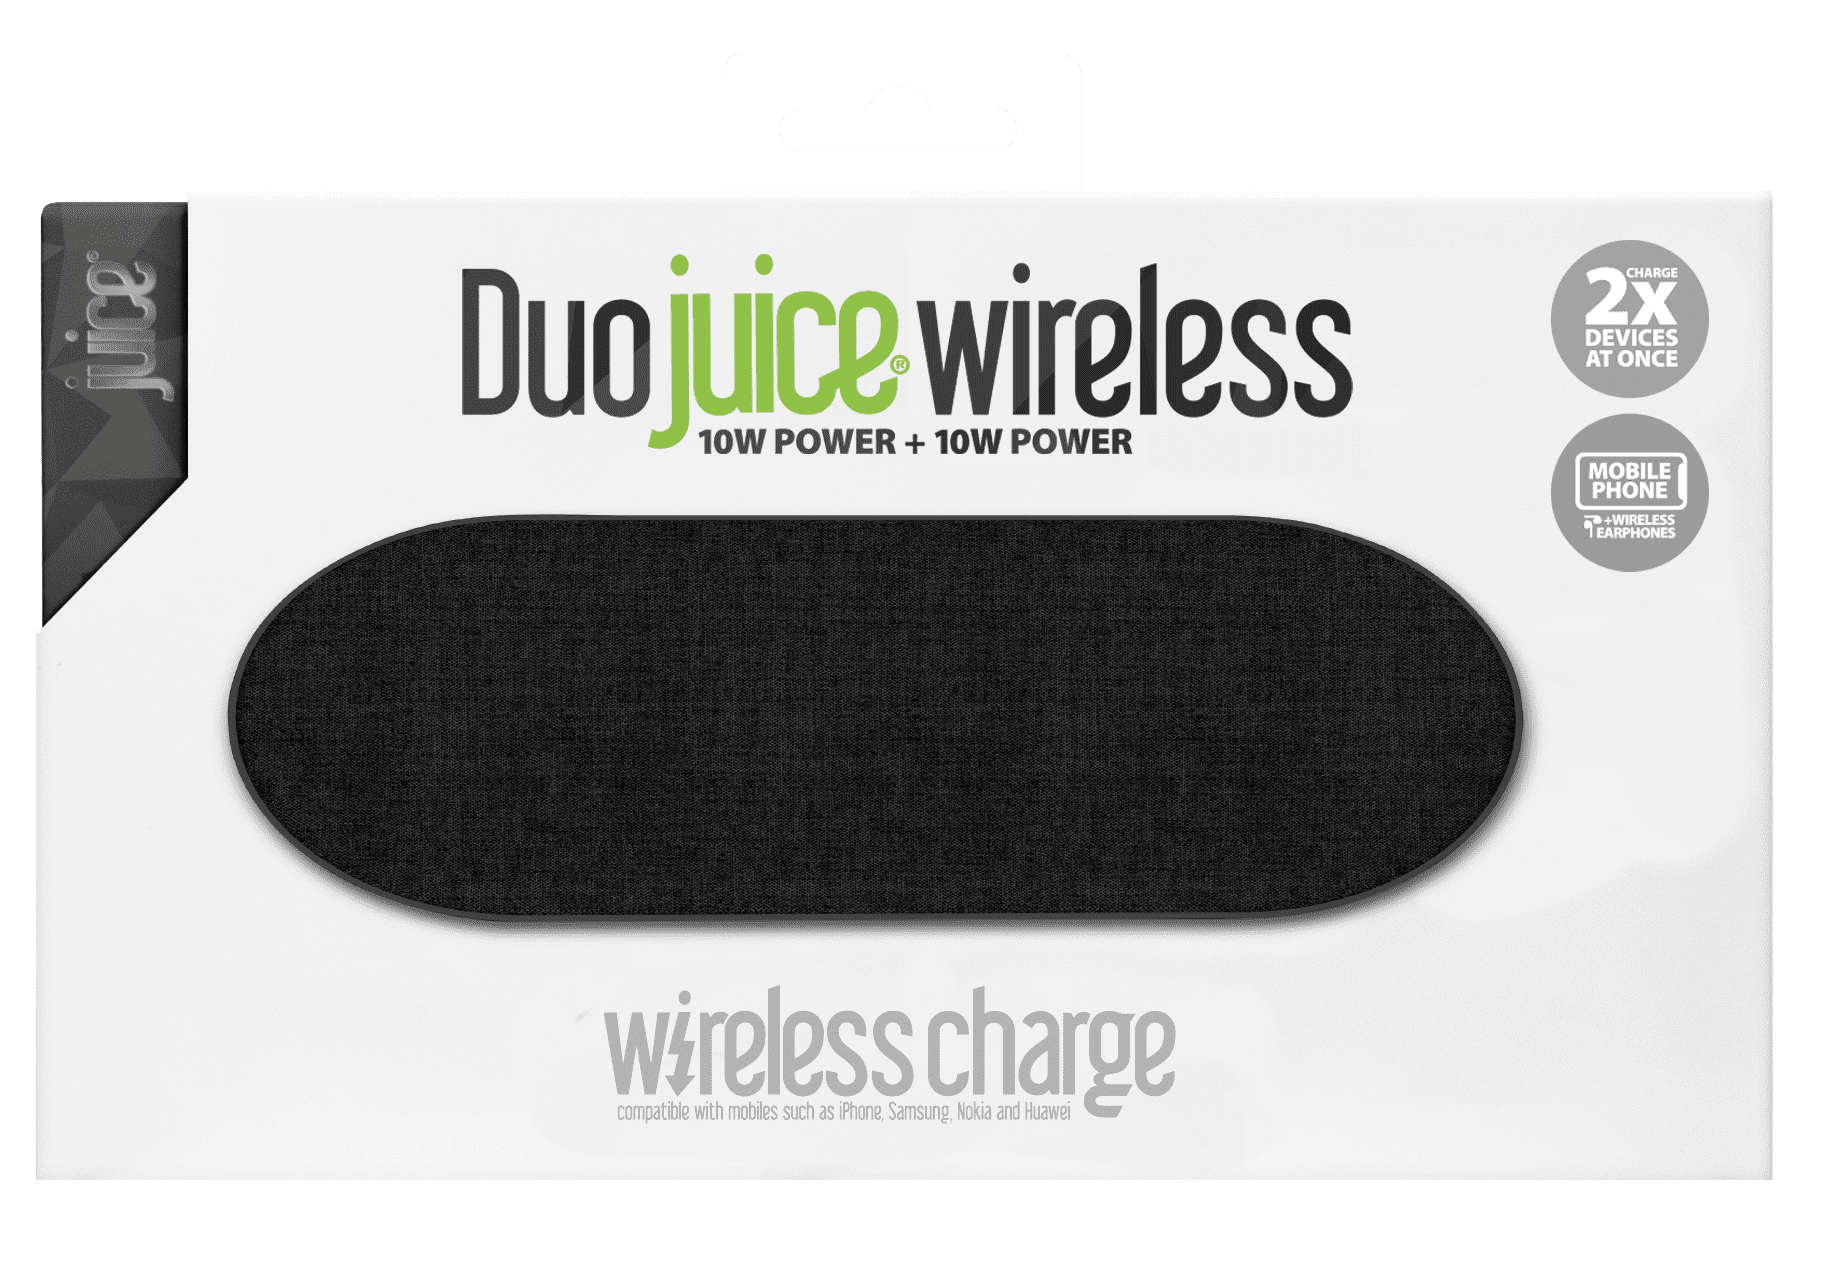 Duo Juice wireless charger